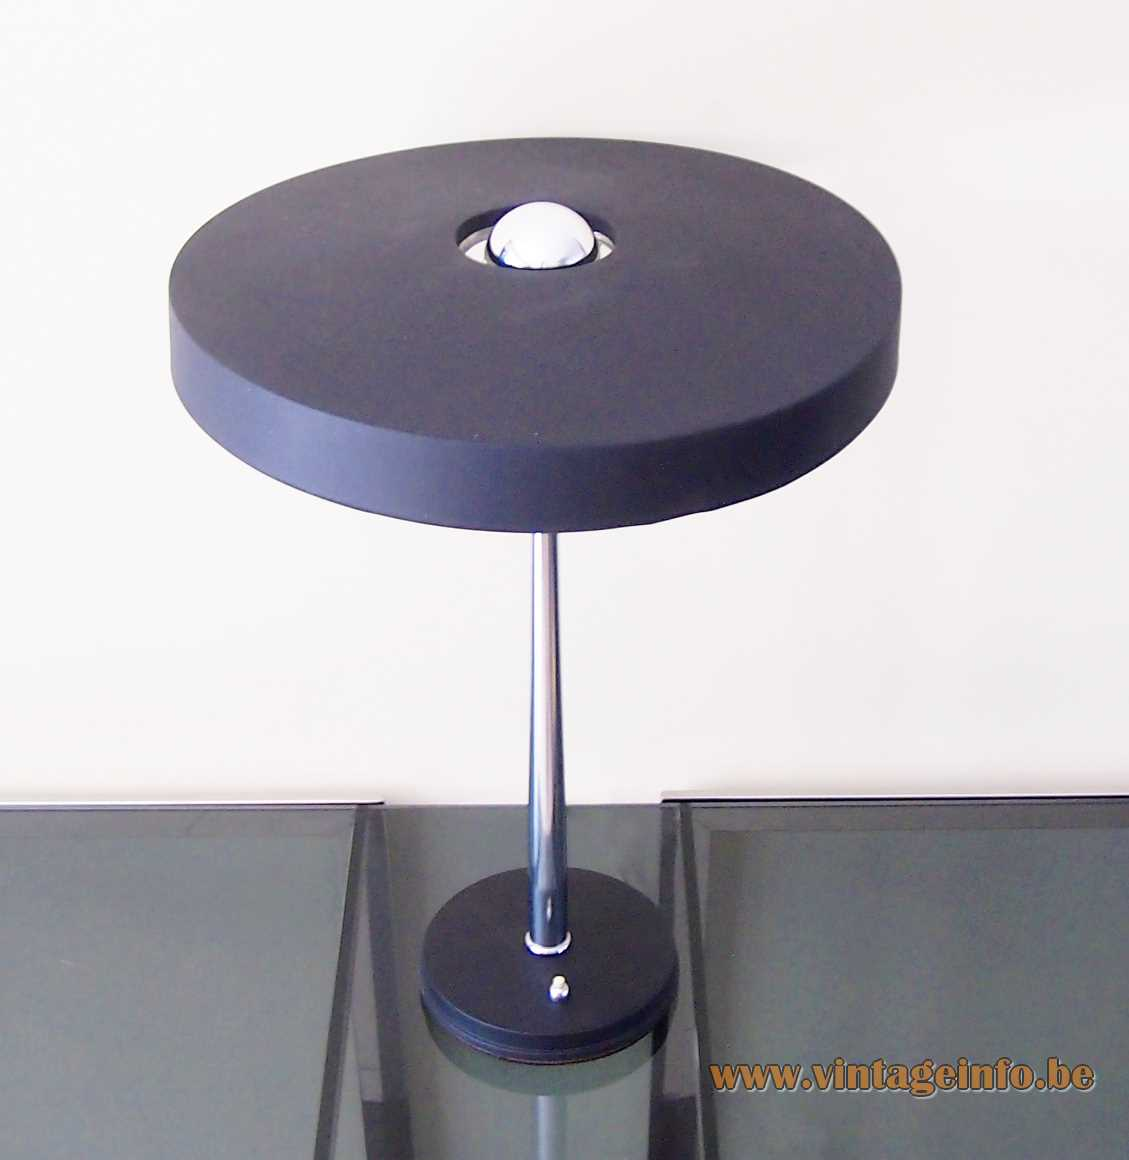 Philips Timor 69 desk lamp design: Louis Kalff aluminium mushroom UFO lampshade chrome rod 1970s 1980s